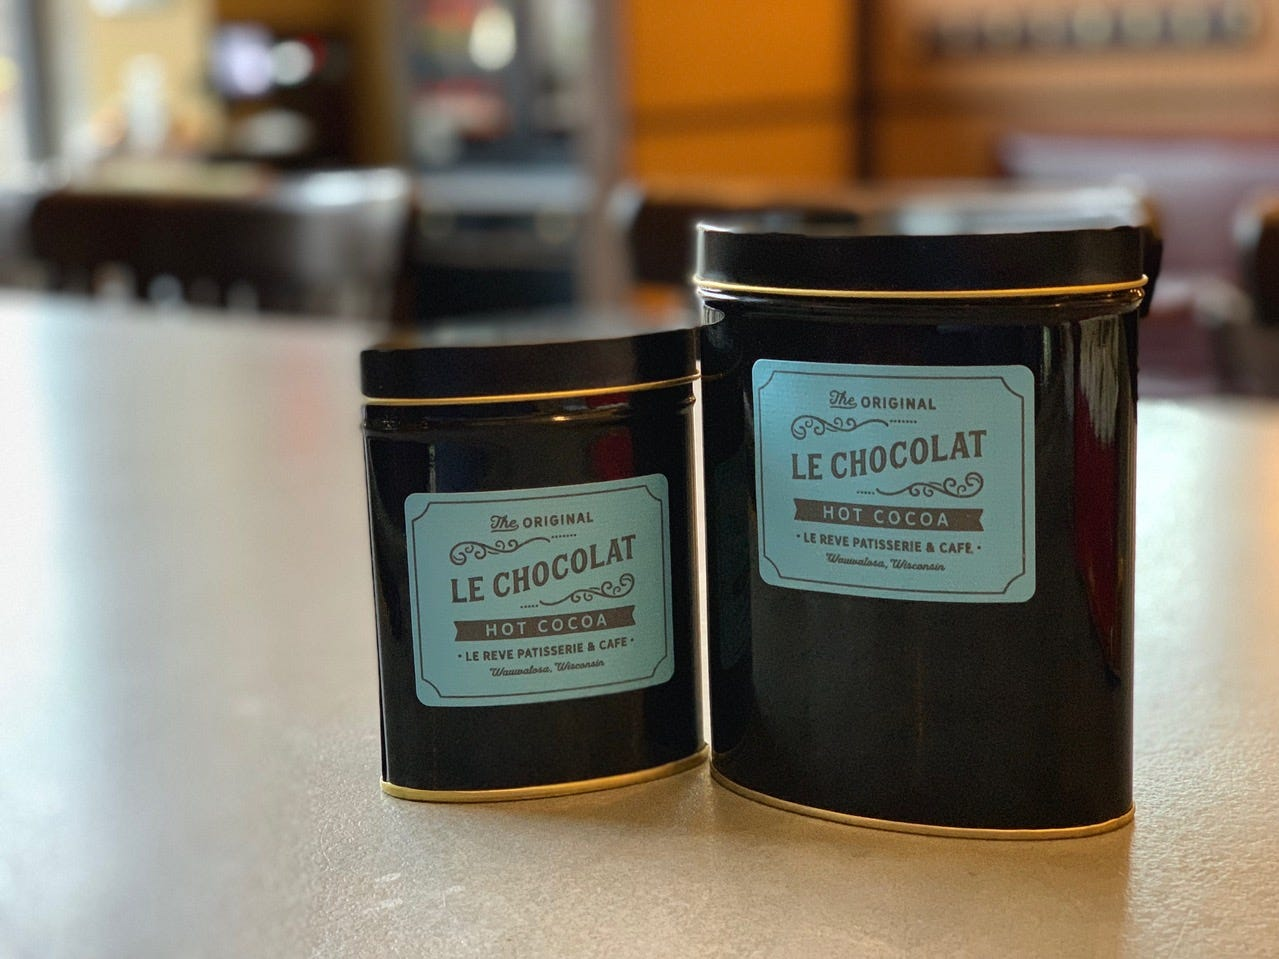 Le Reve Patisserie & Cafe, 7610 Harwood Ave., sells its drinking chocolate (hand-grated Valrhona and Cacao Barry) in tins to make at home.